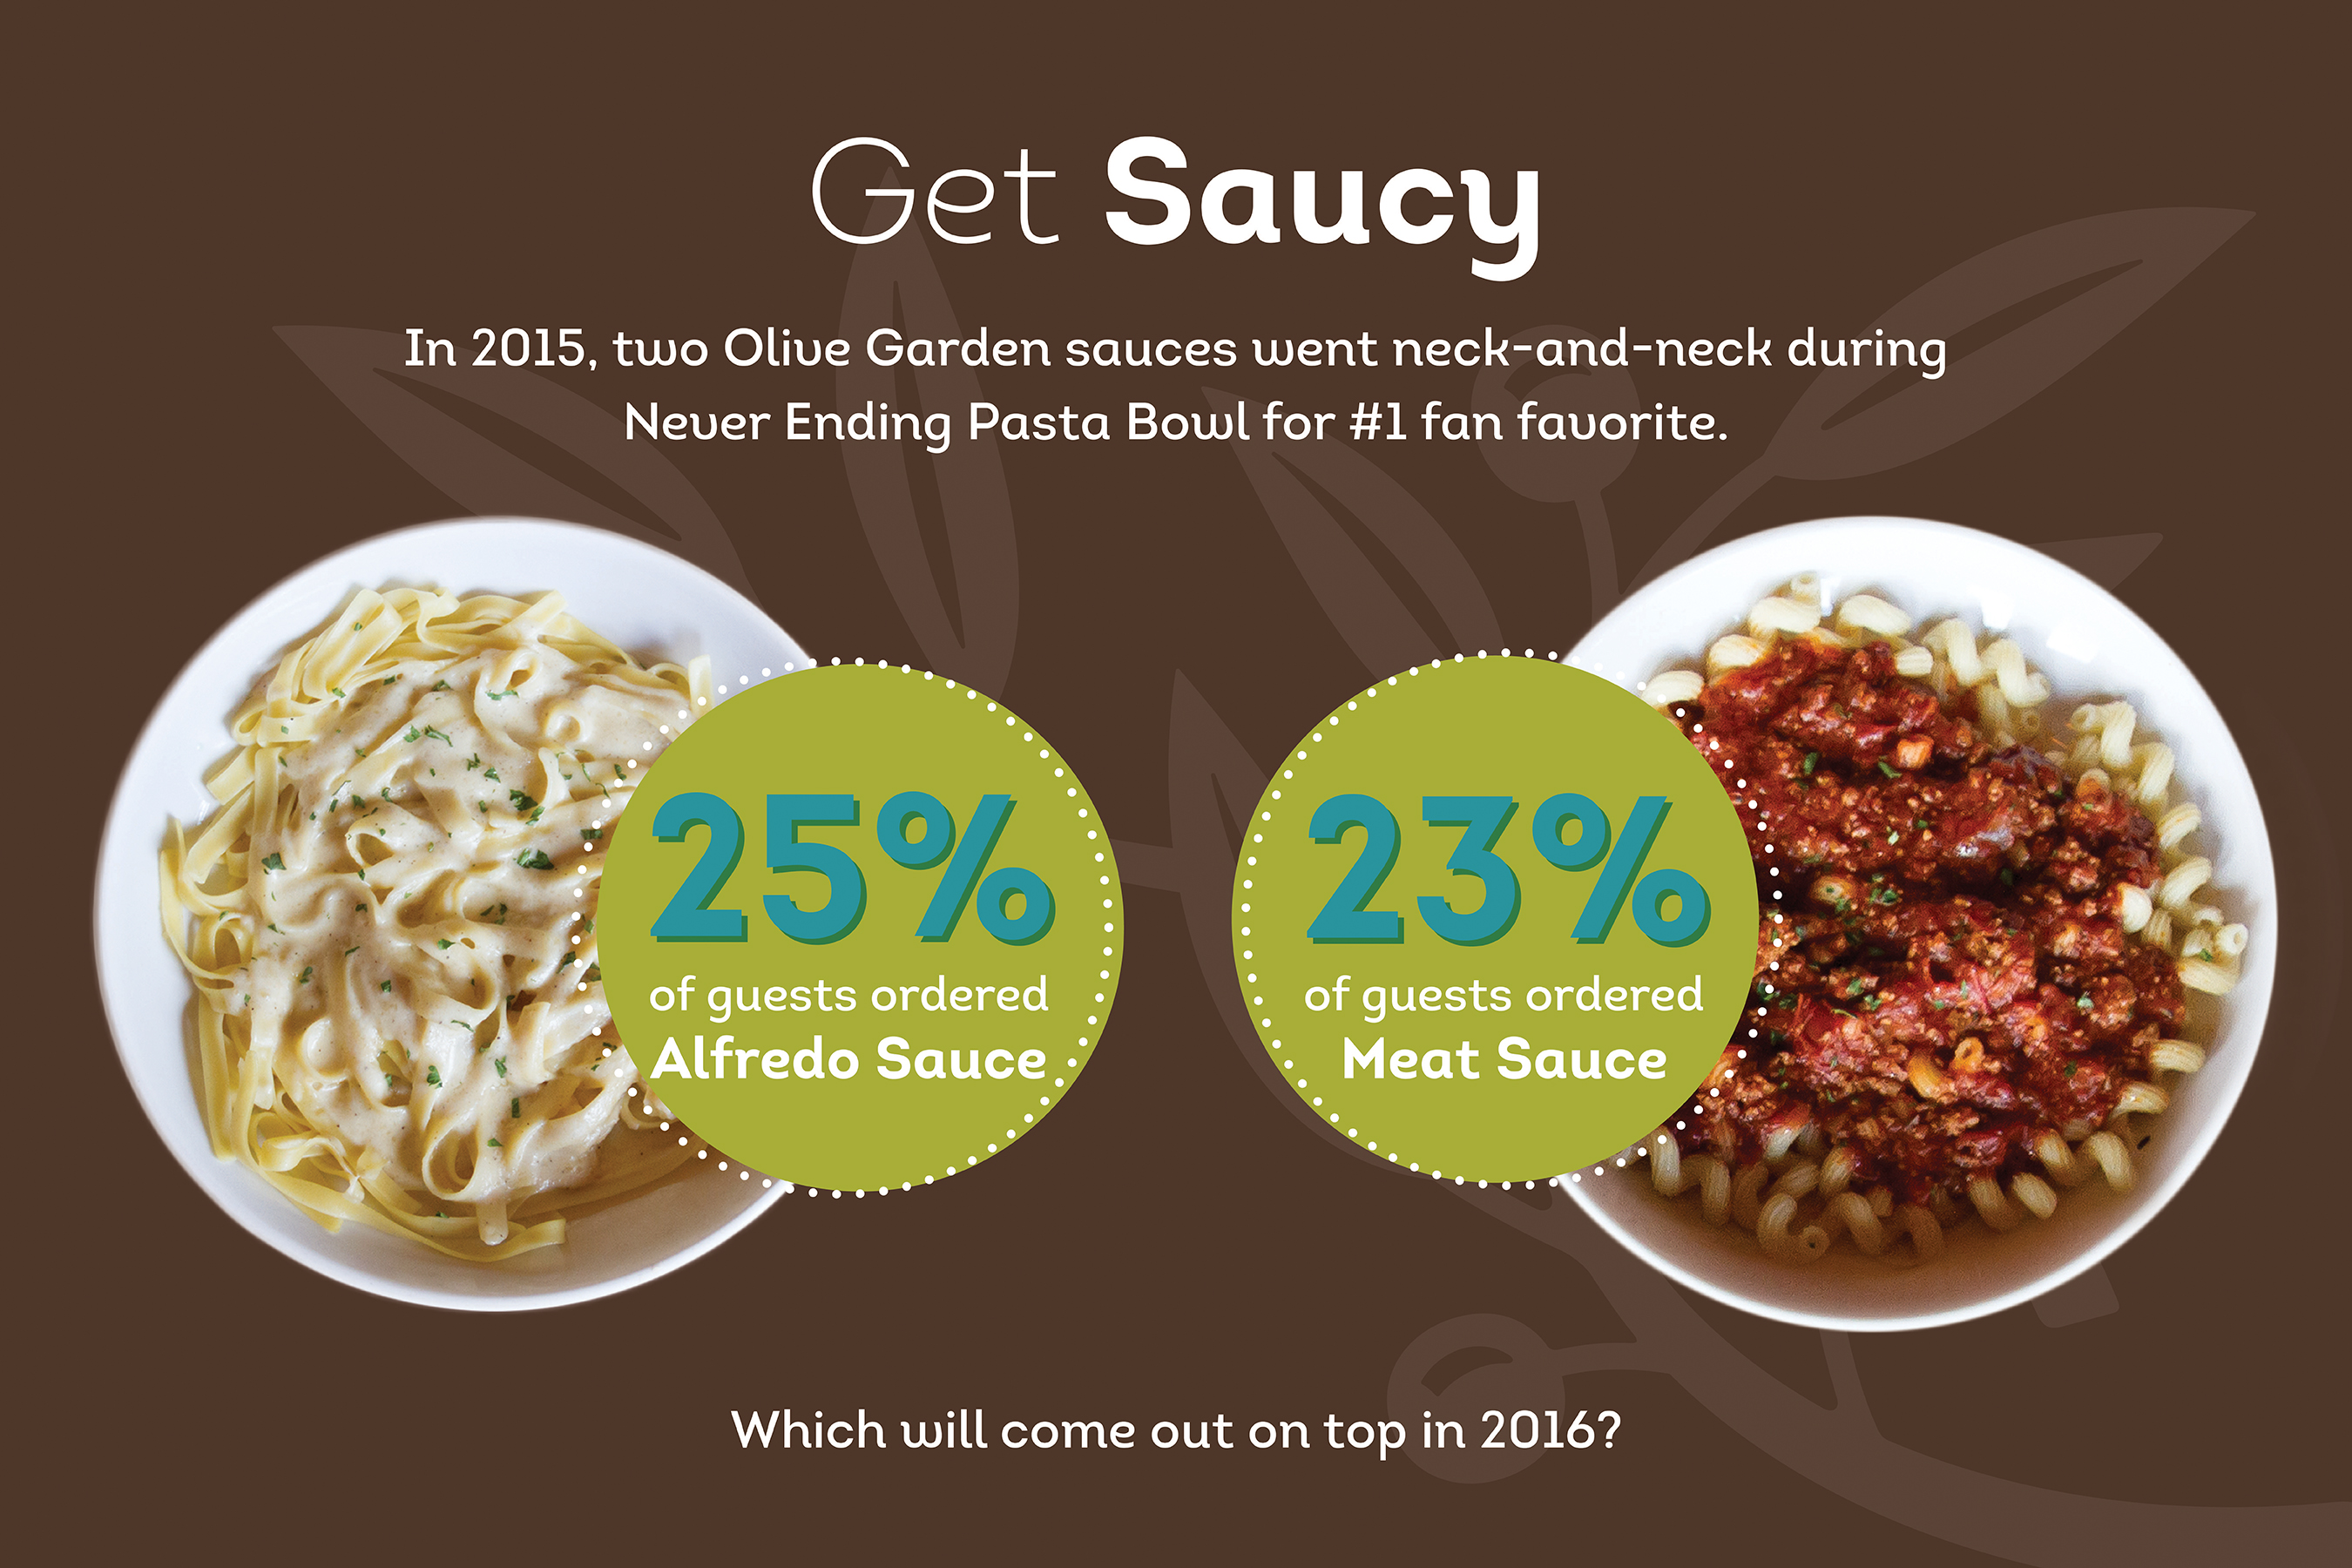 Olive garden s never ending pasta bowl returns with addition of best selling entr e chicken alfredo for Olive garden endless pasta bowl